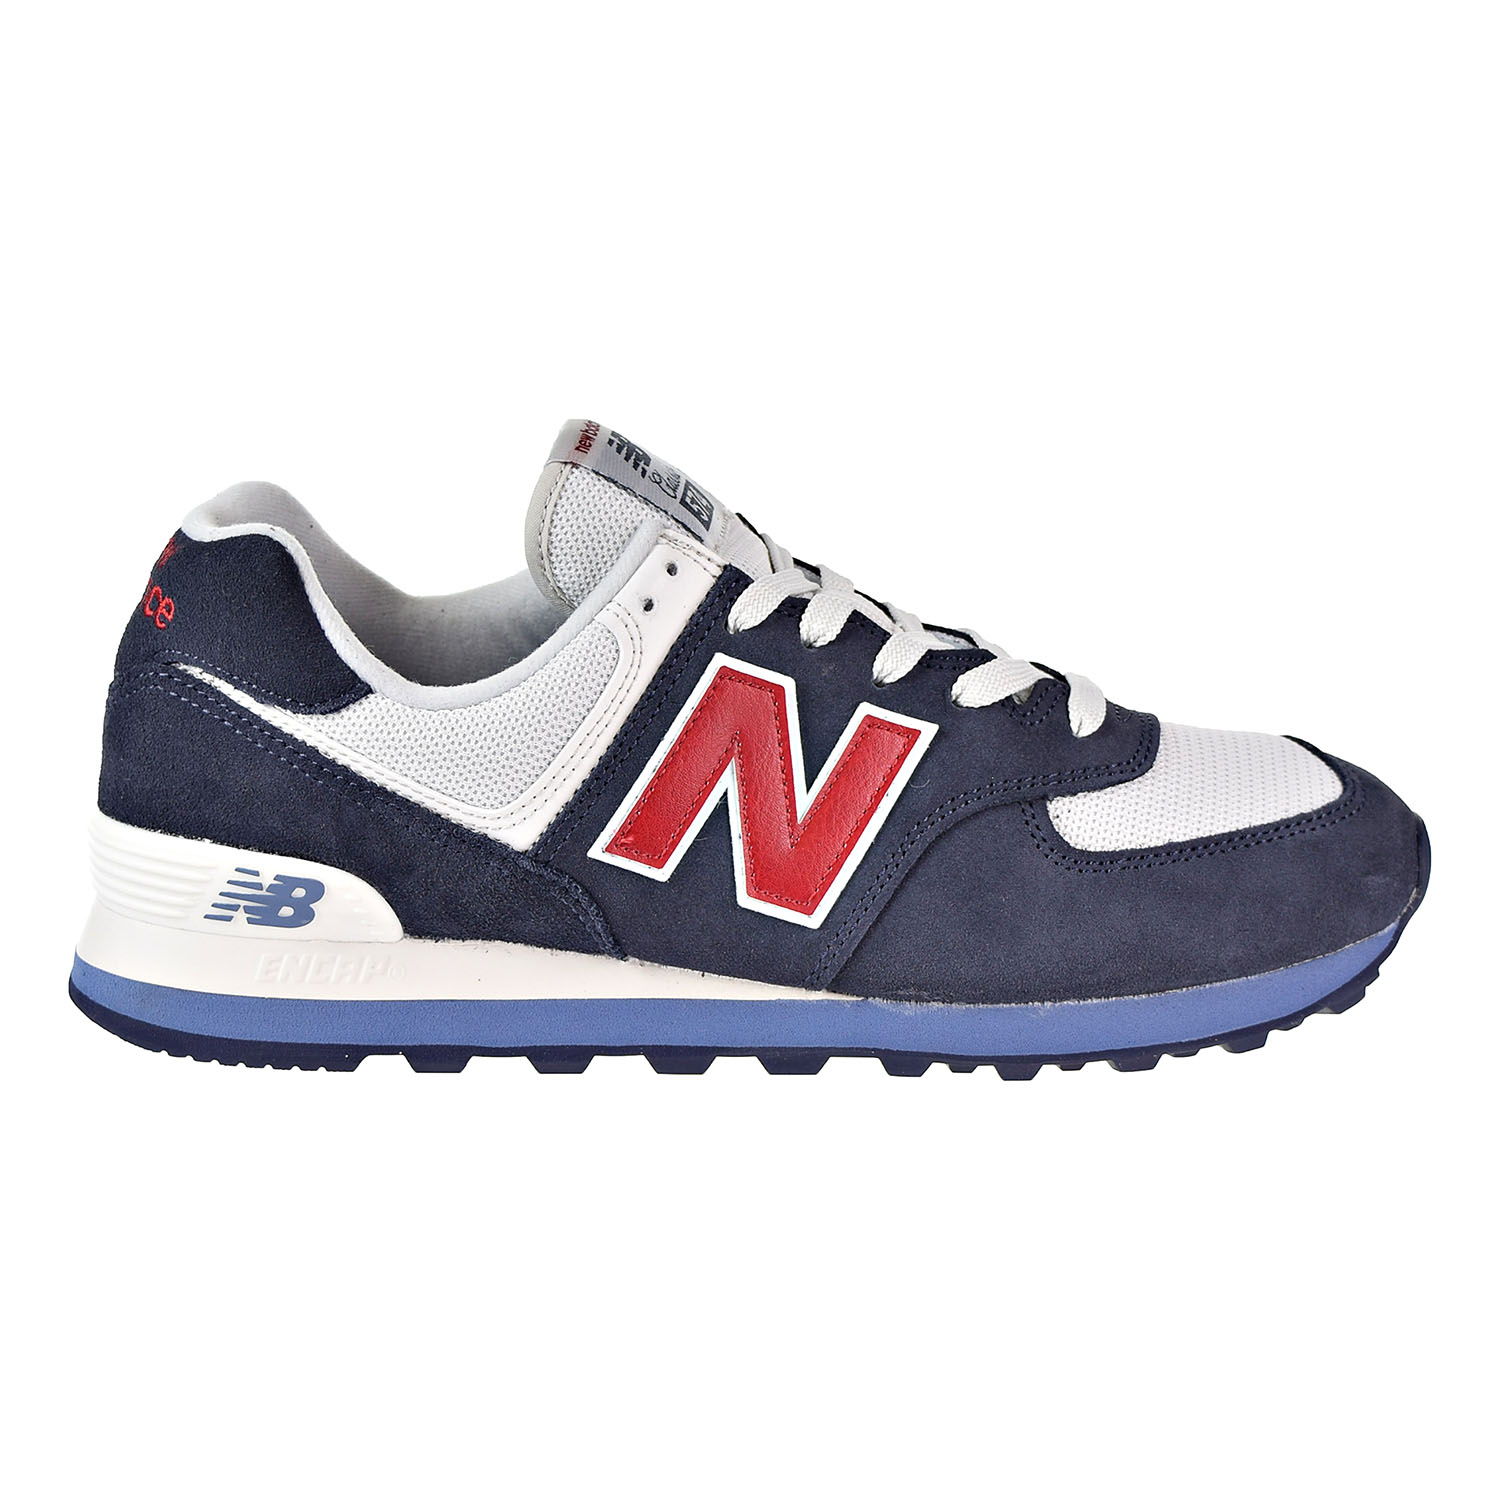 bfb079253d4 Details about New Balance 574 Core Plus Men s Shoes Red Blue White ML574ESC